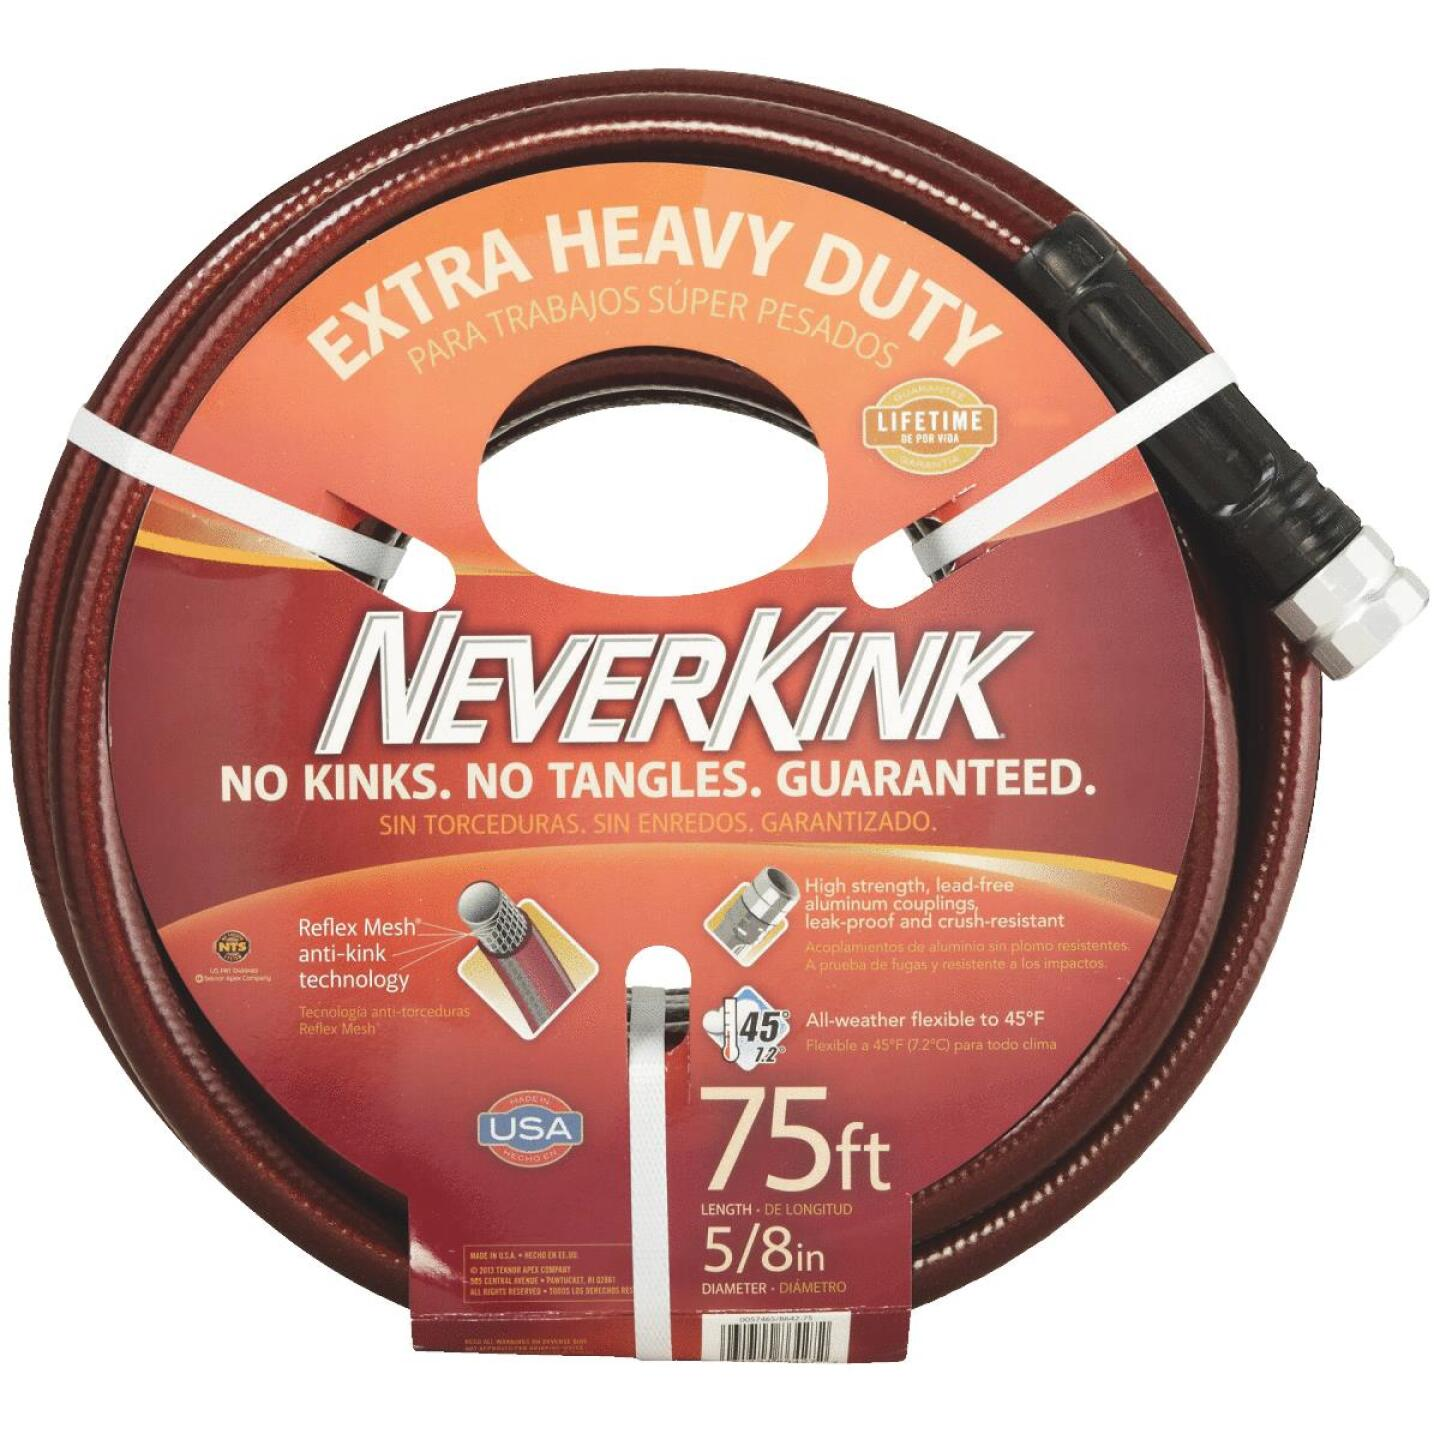 Neverkink 5/8 In. Dia. x 75 Ft. L. Extra Heavy-Duty Garden Hose Image 1